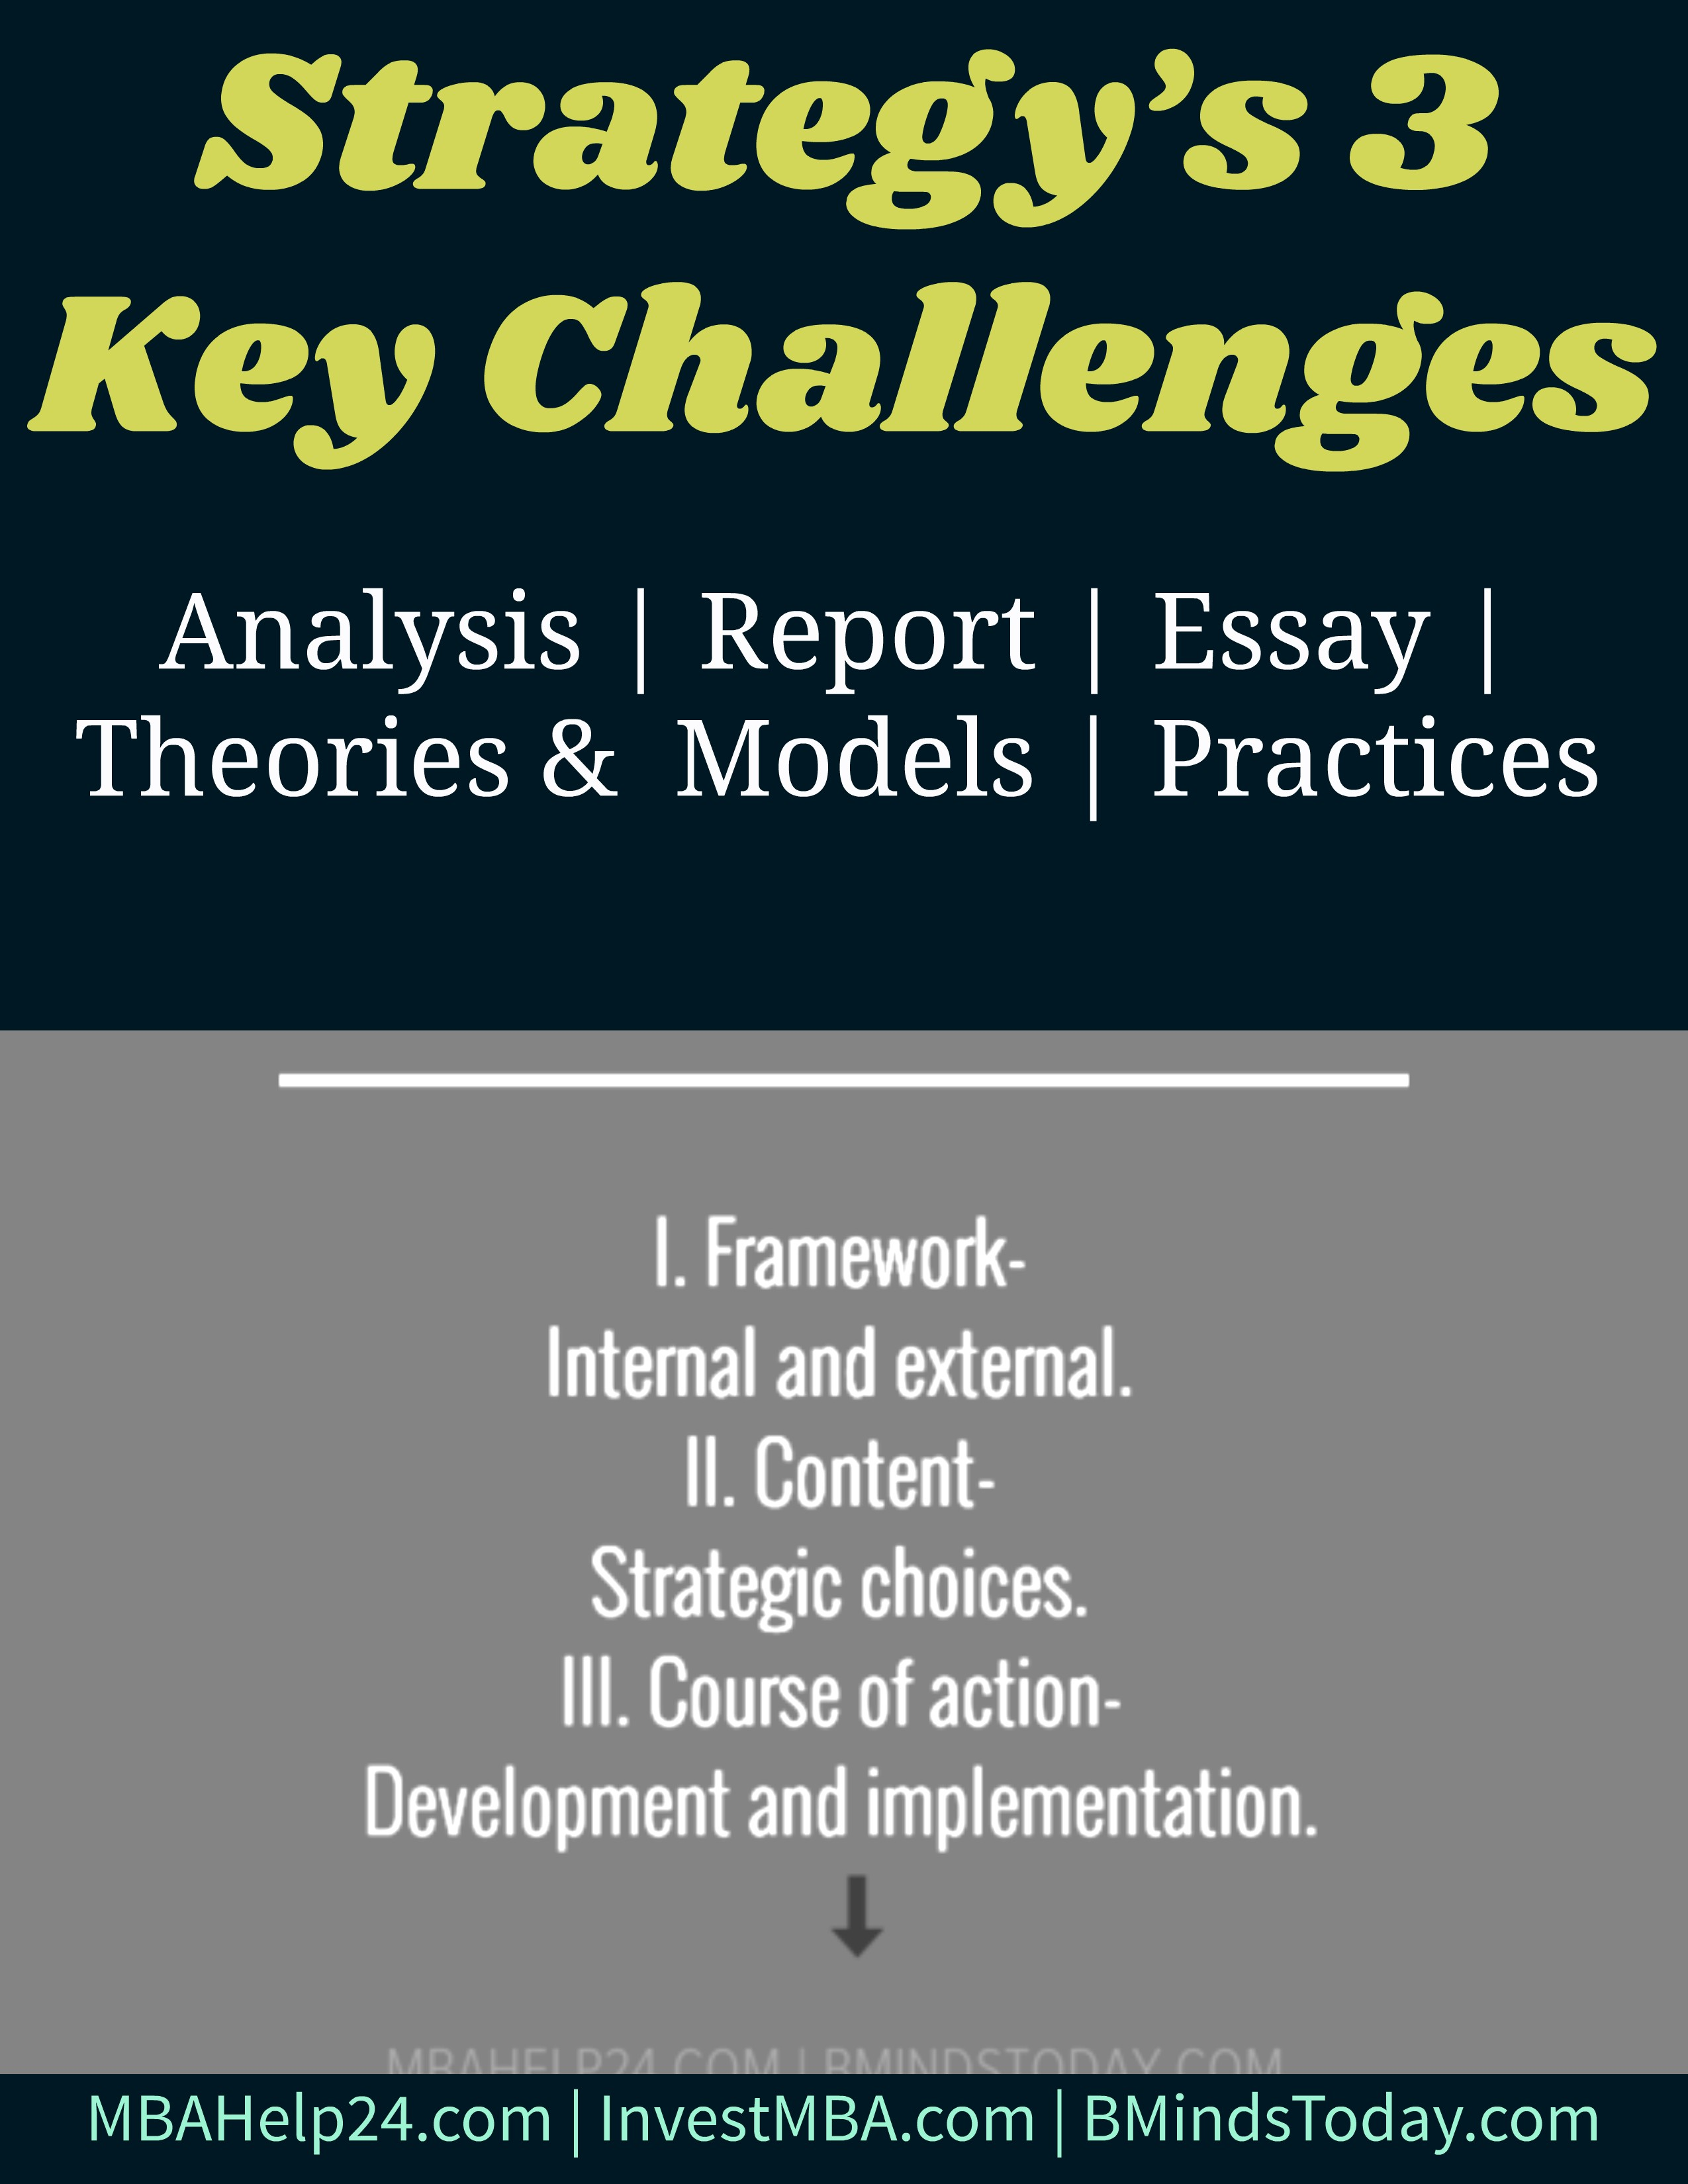 Strategy's Three Key Challenges